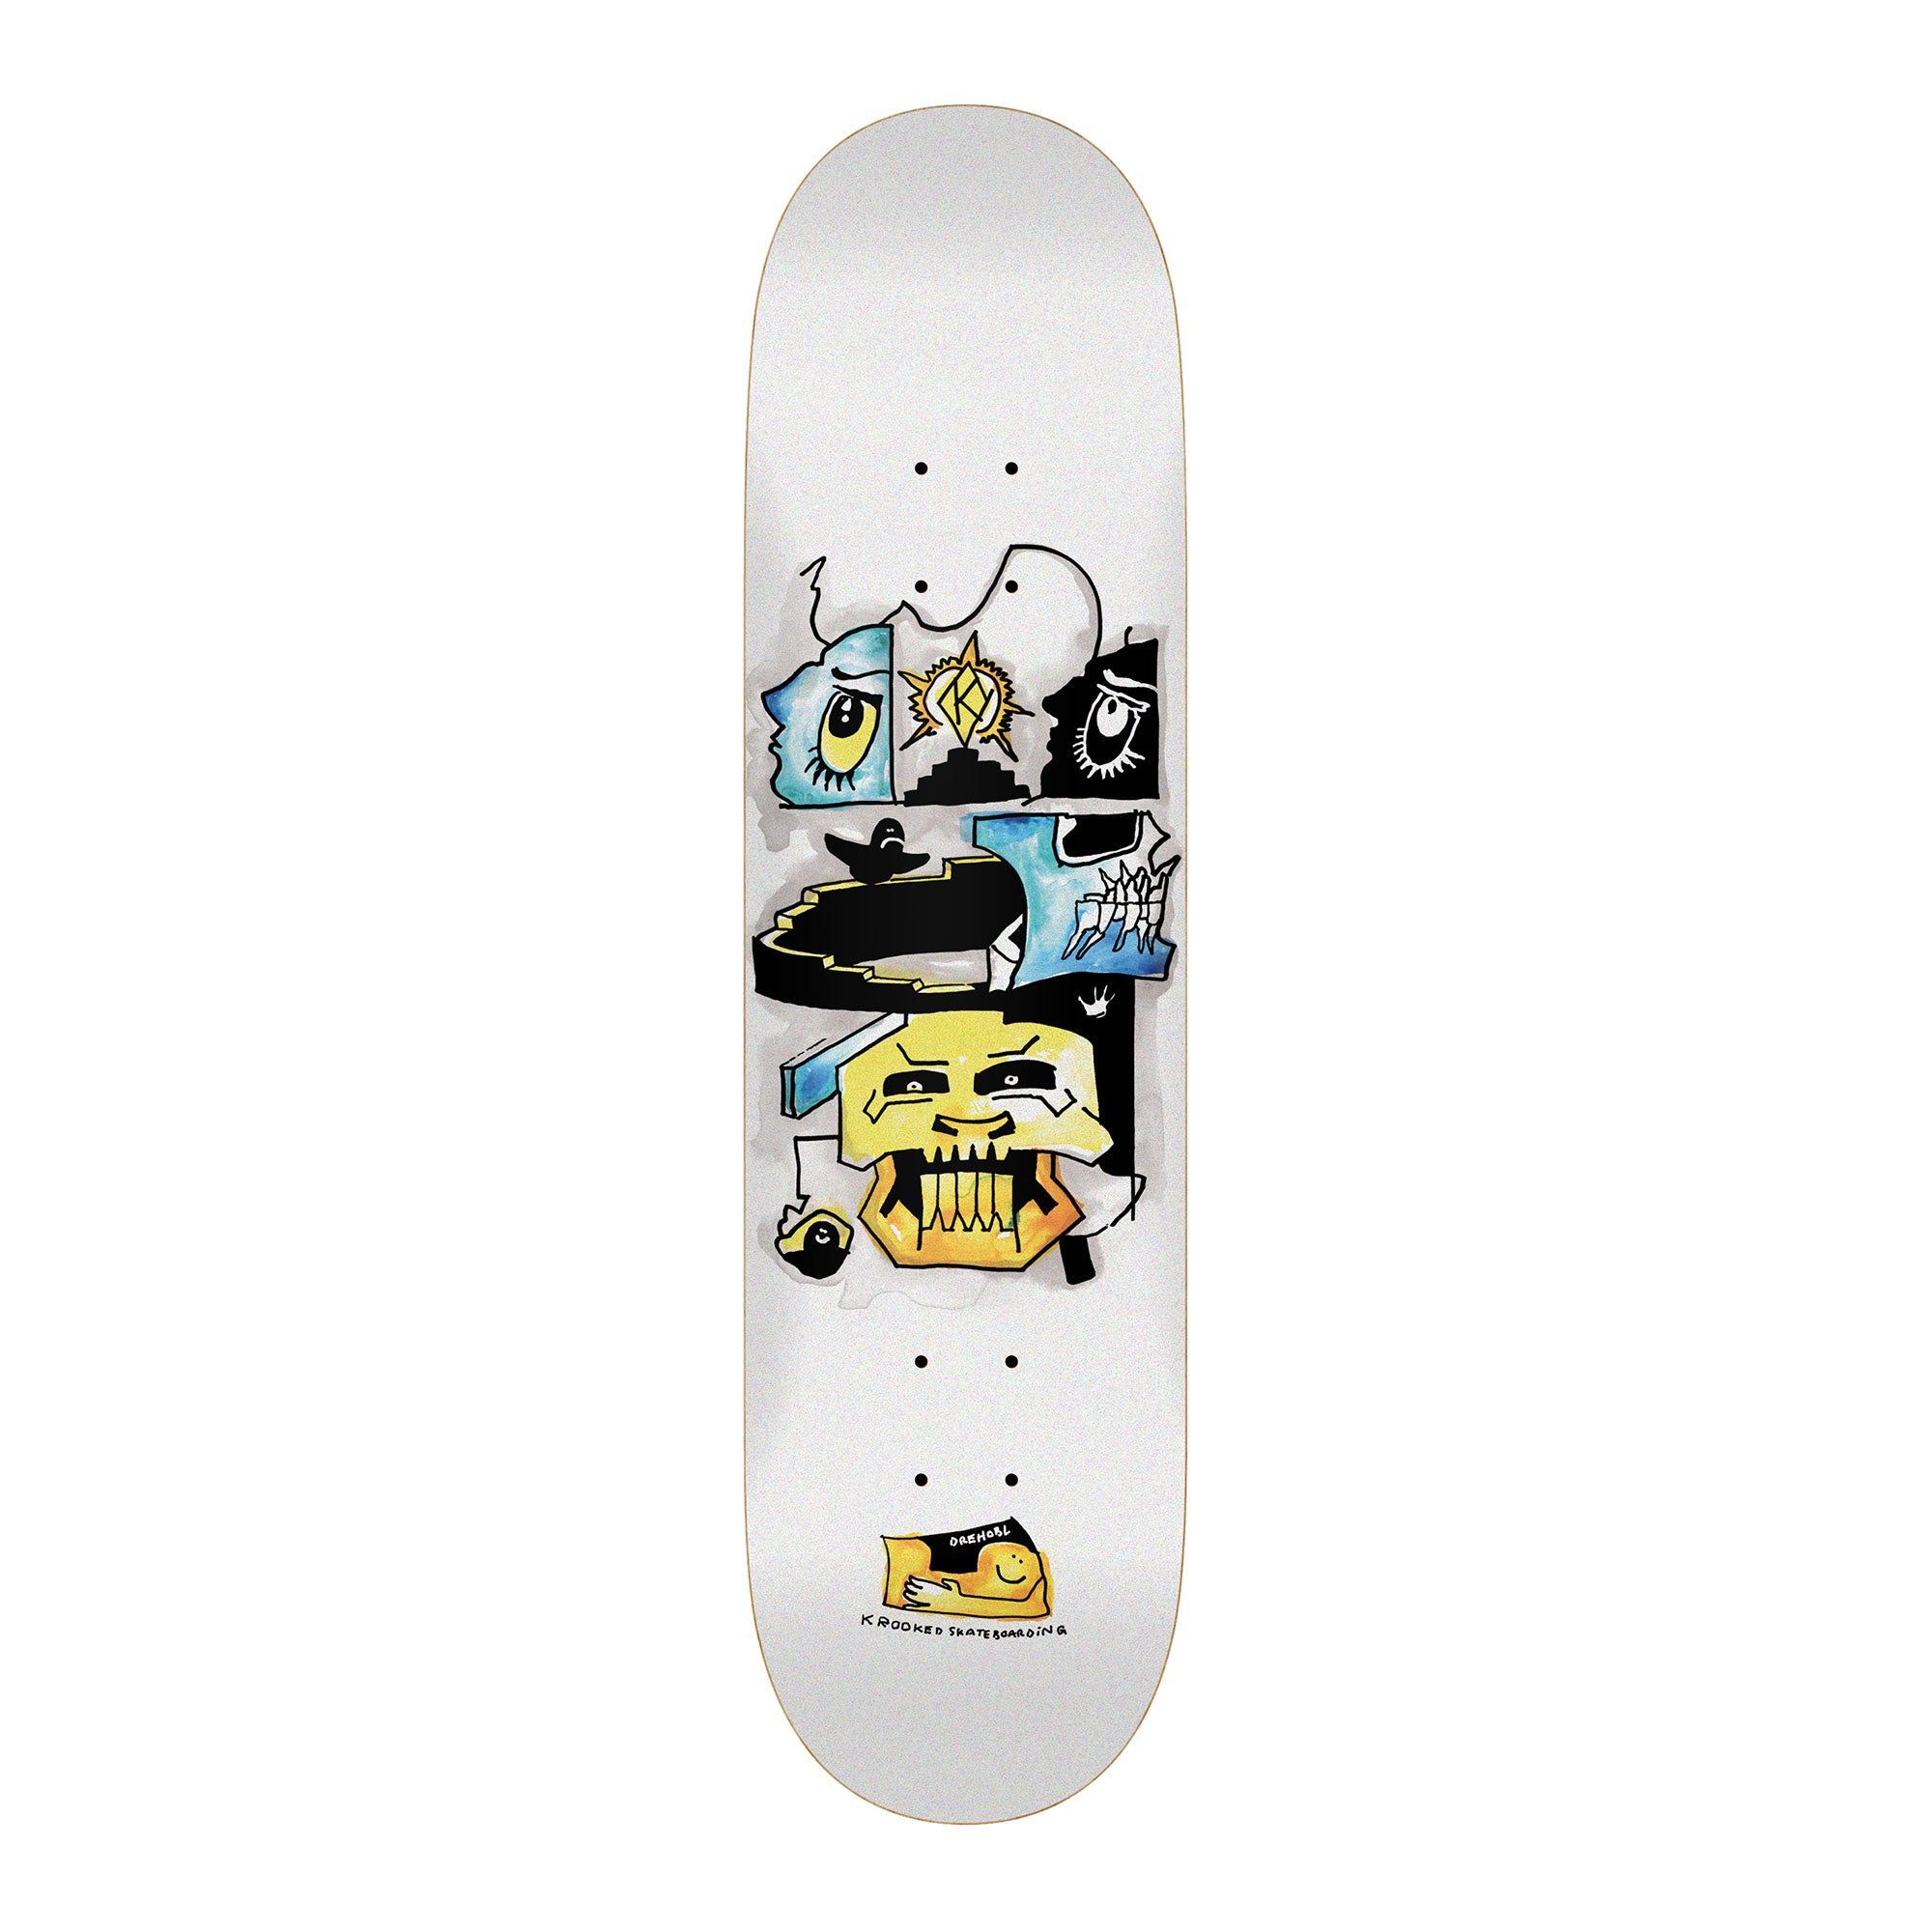 Krooked Gibson Drehobl Deck Product Photo #1